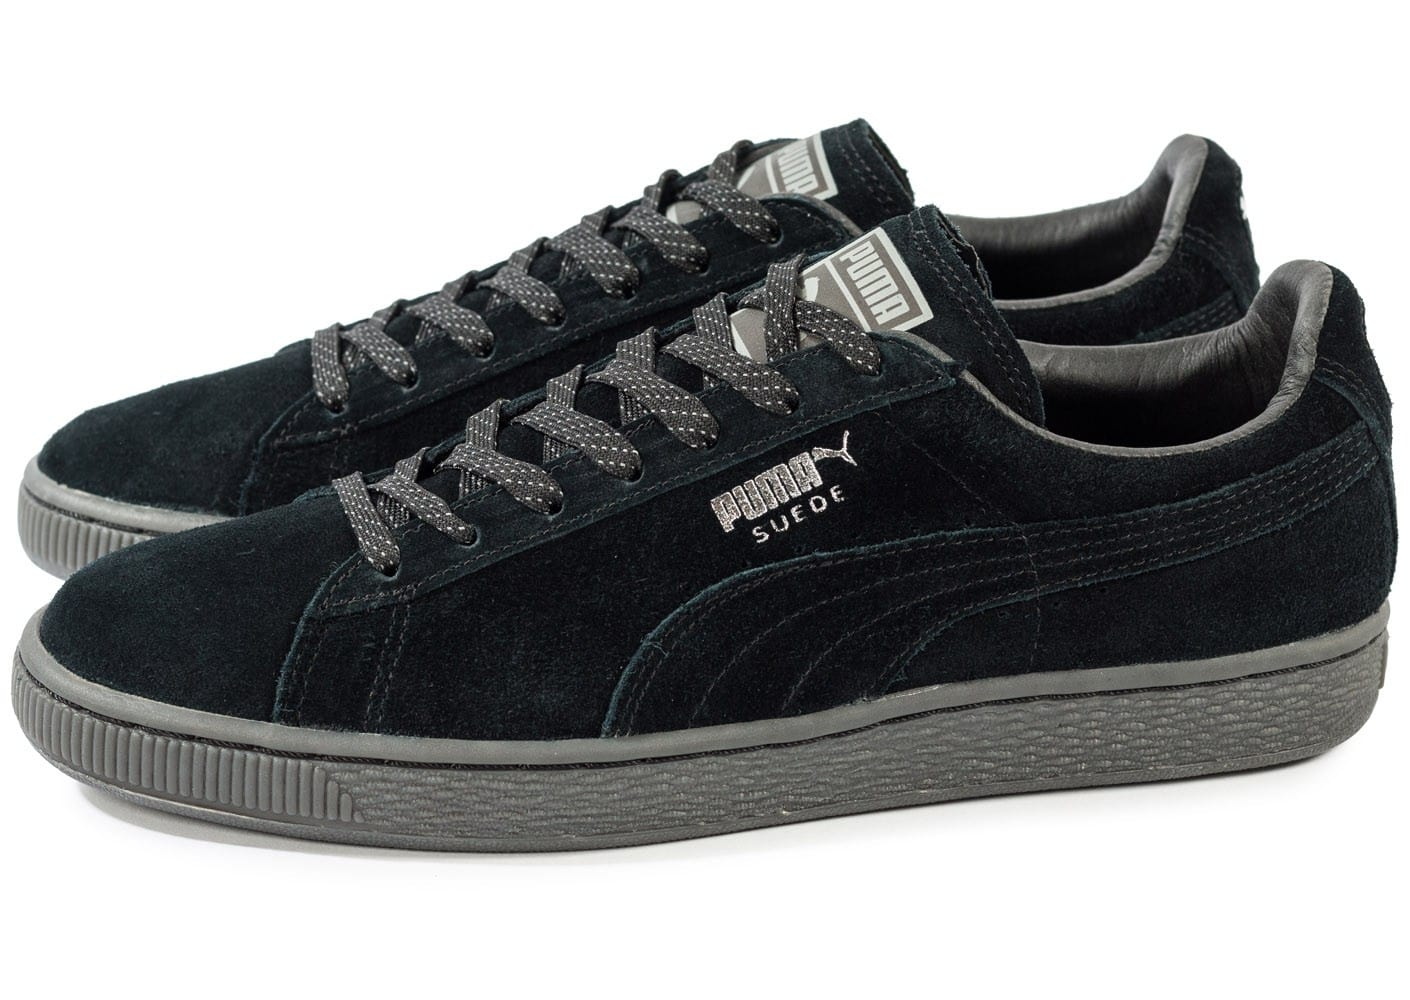 puma suede classic ref iced noir chaussures homme chausport. Black Bedroom Furniture Sets. Home Design Ideas